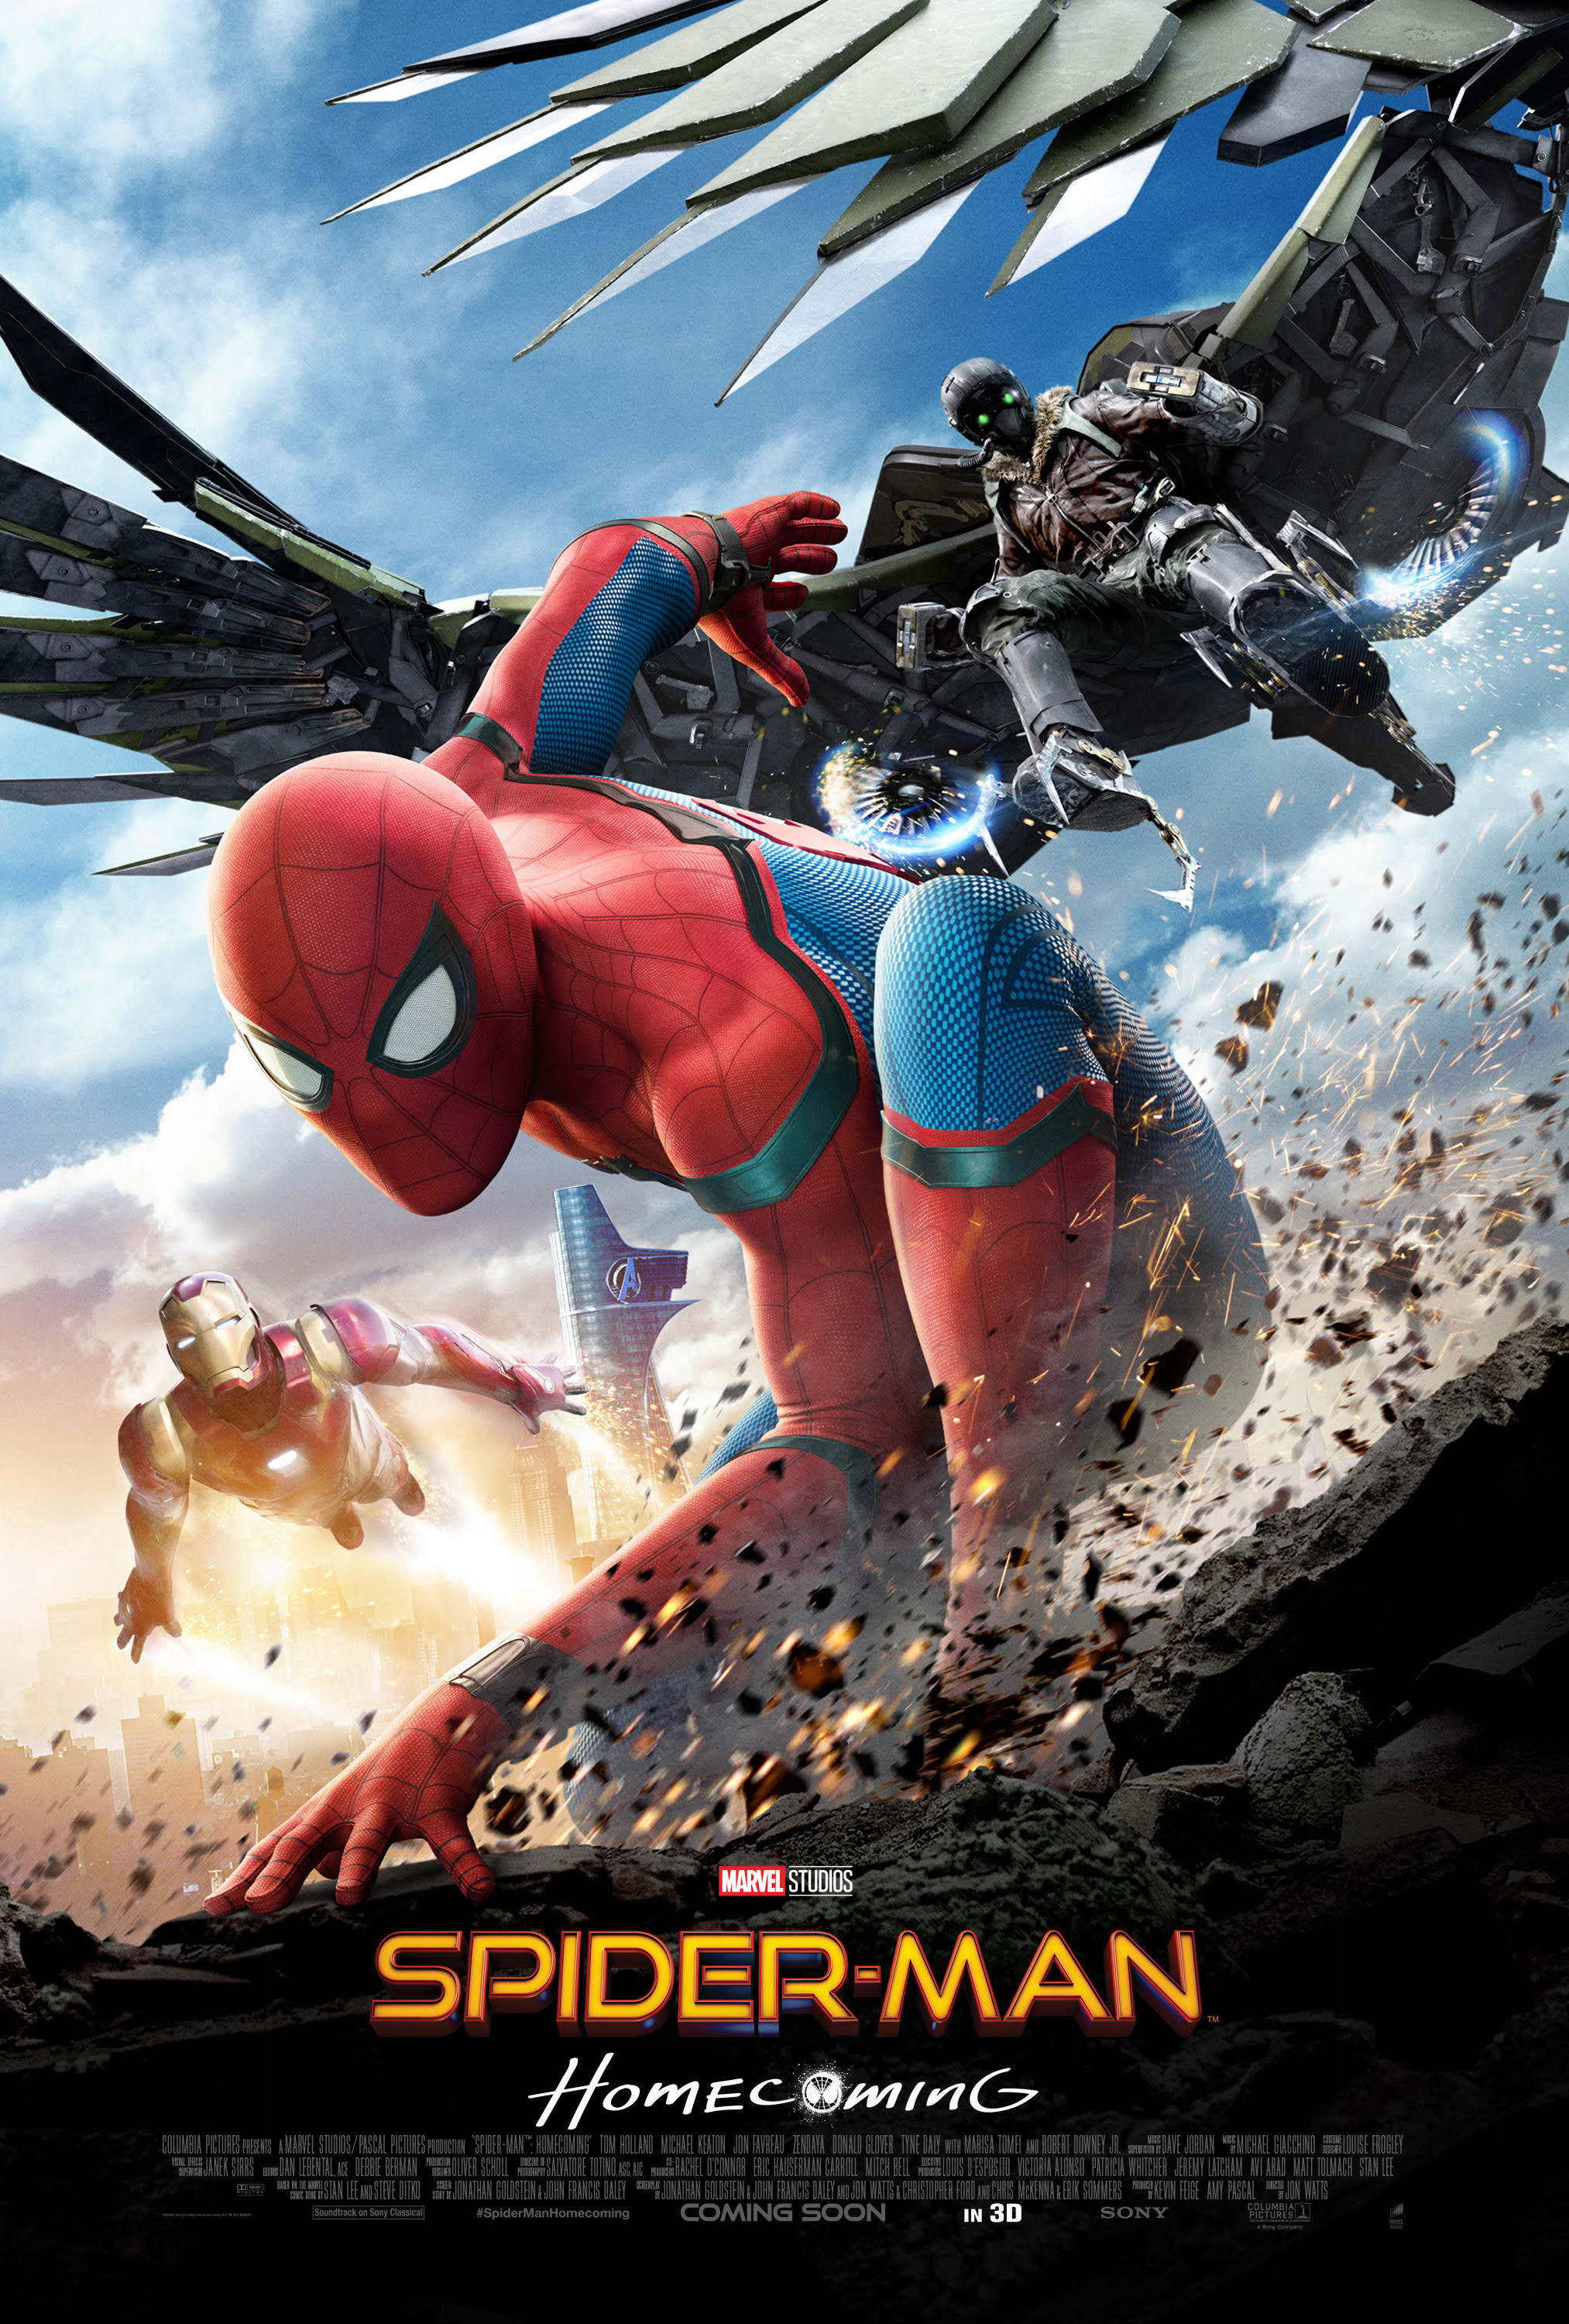 Spiderman-poster-6-large